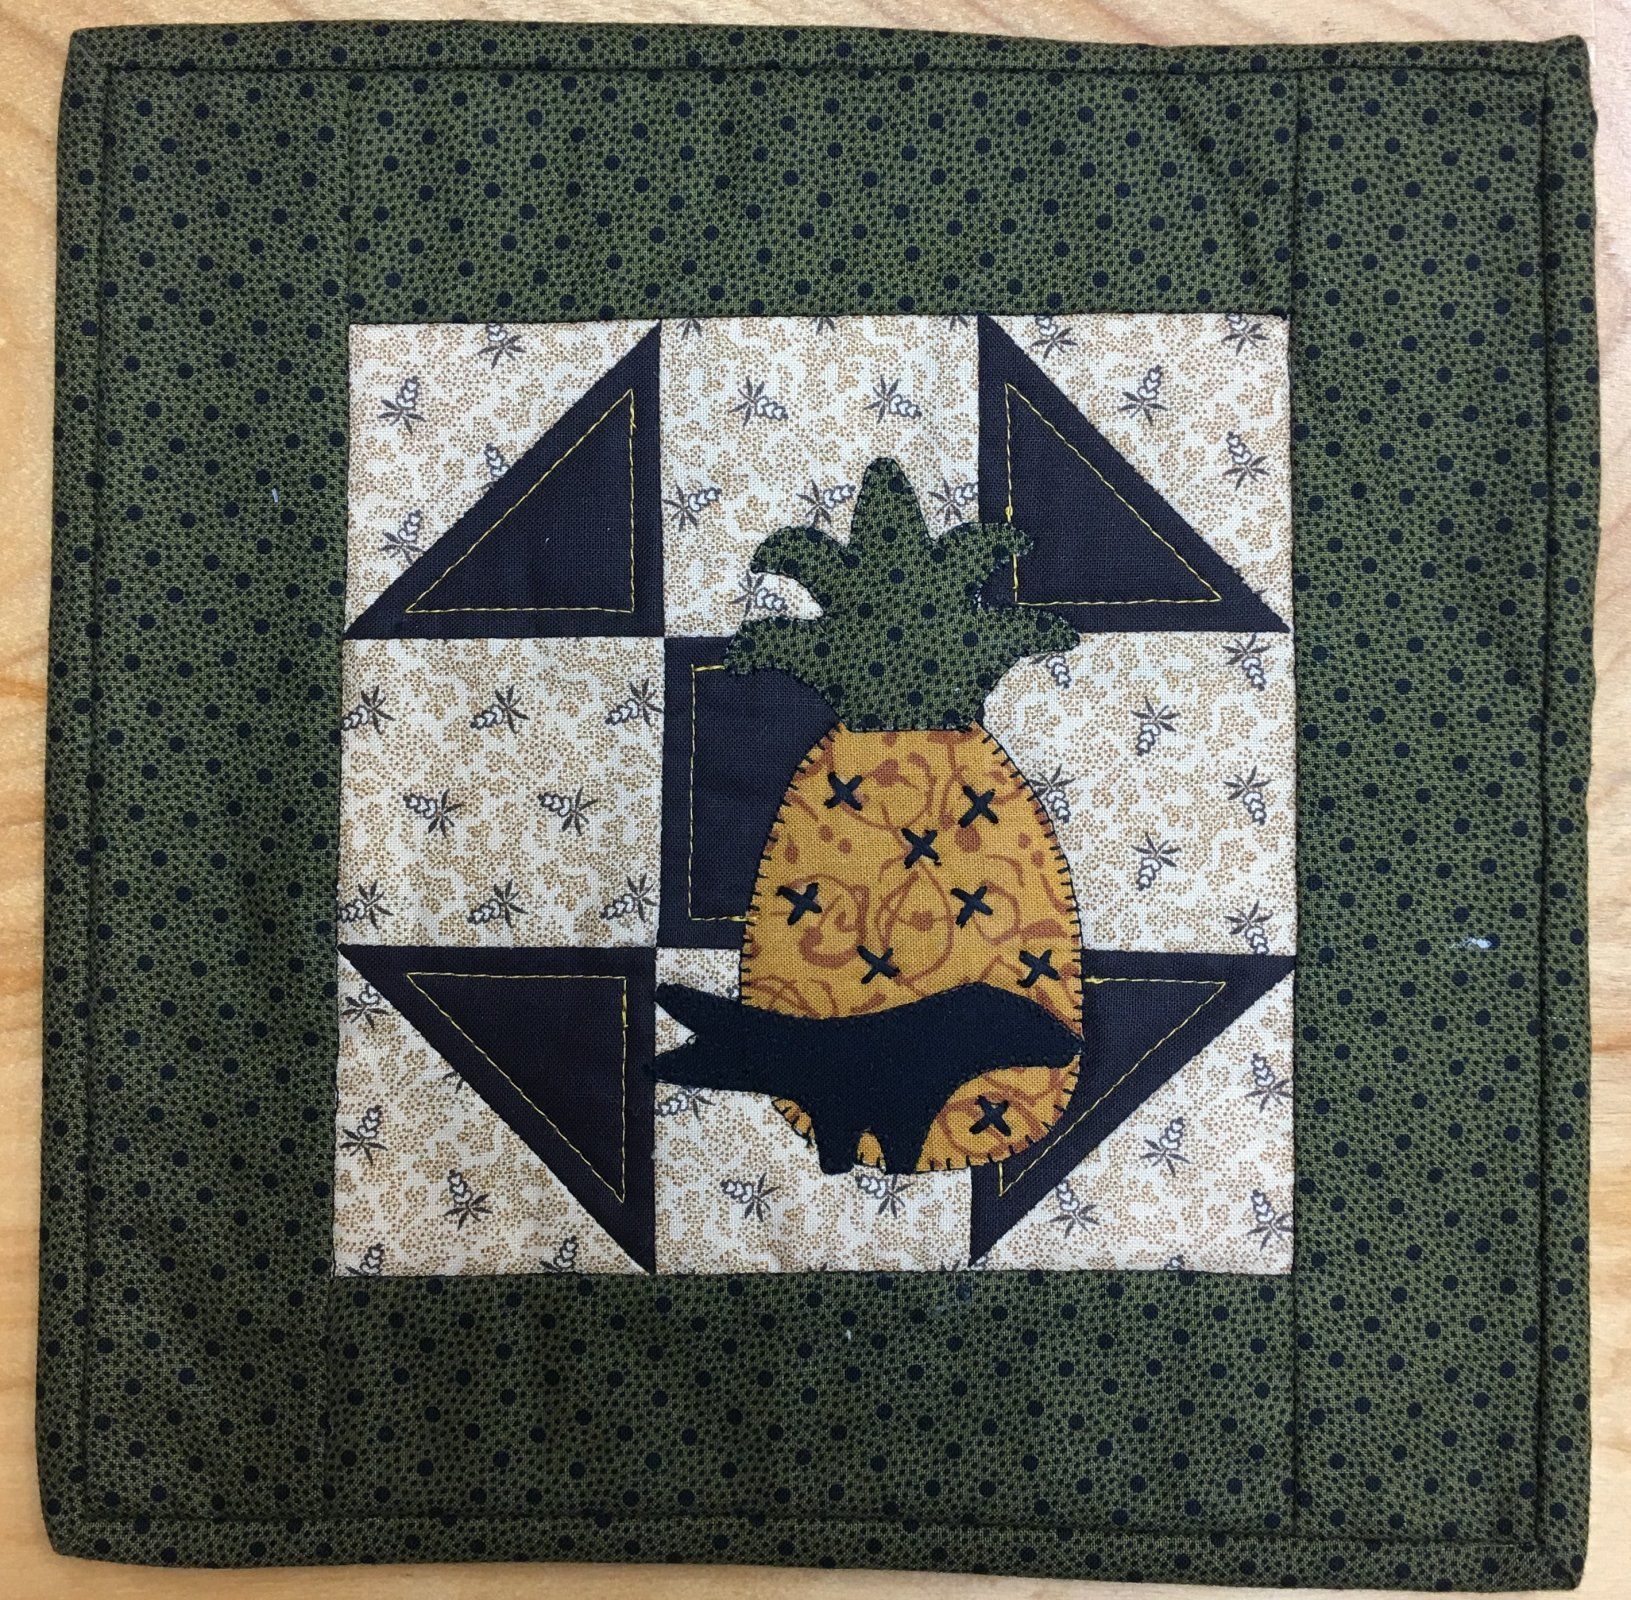 Pineapple - Finished Quilt